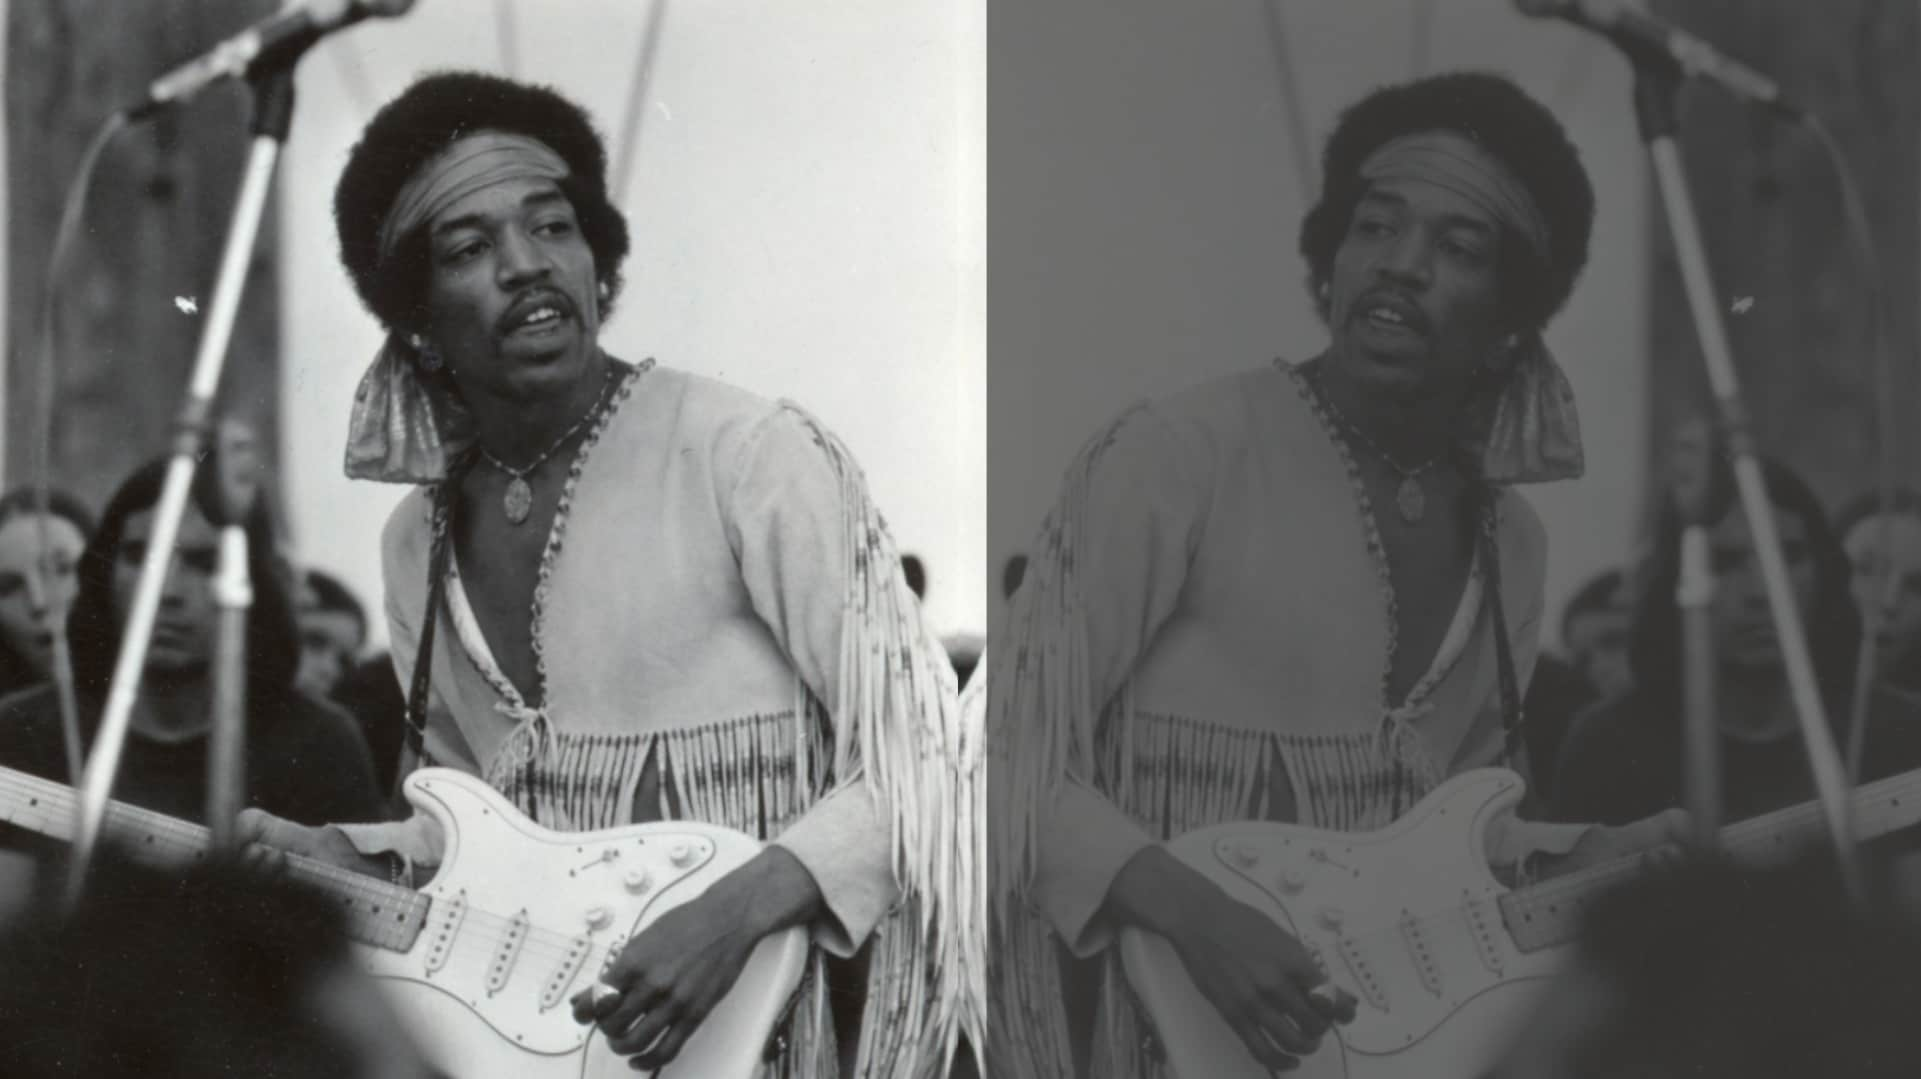 A Jimi Hendrix experience in London: On the musician's trail in city he thought of as 'home'